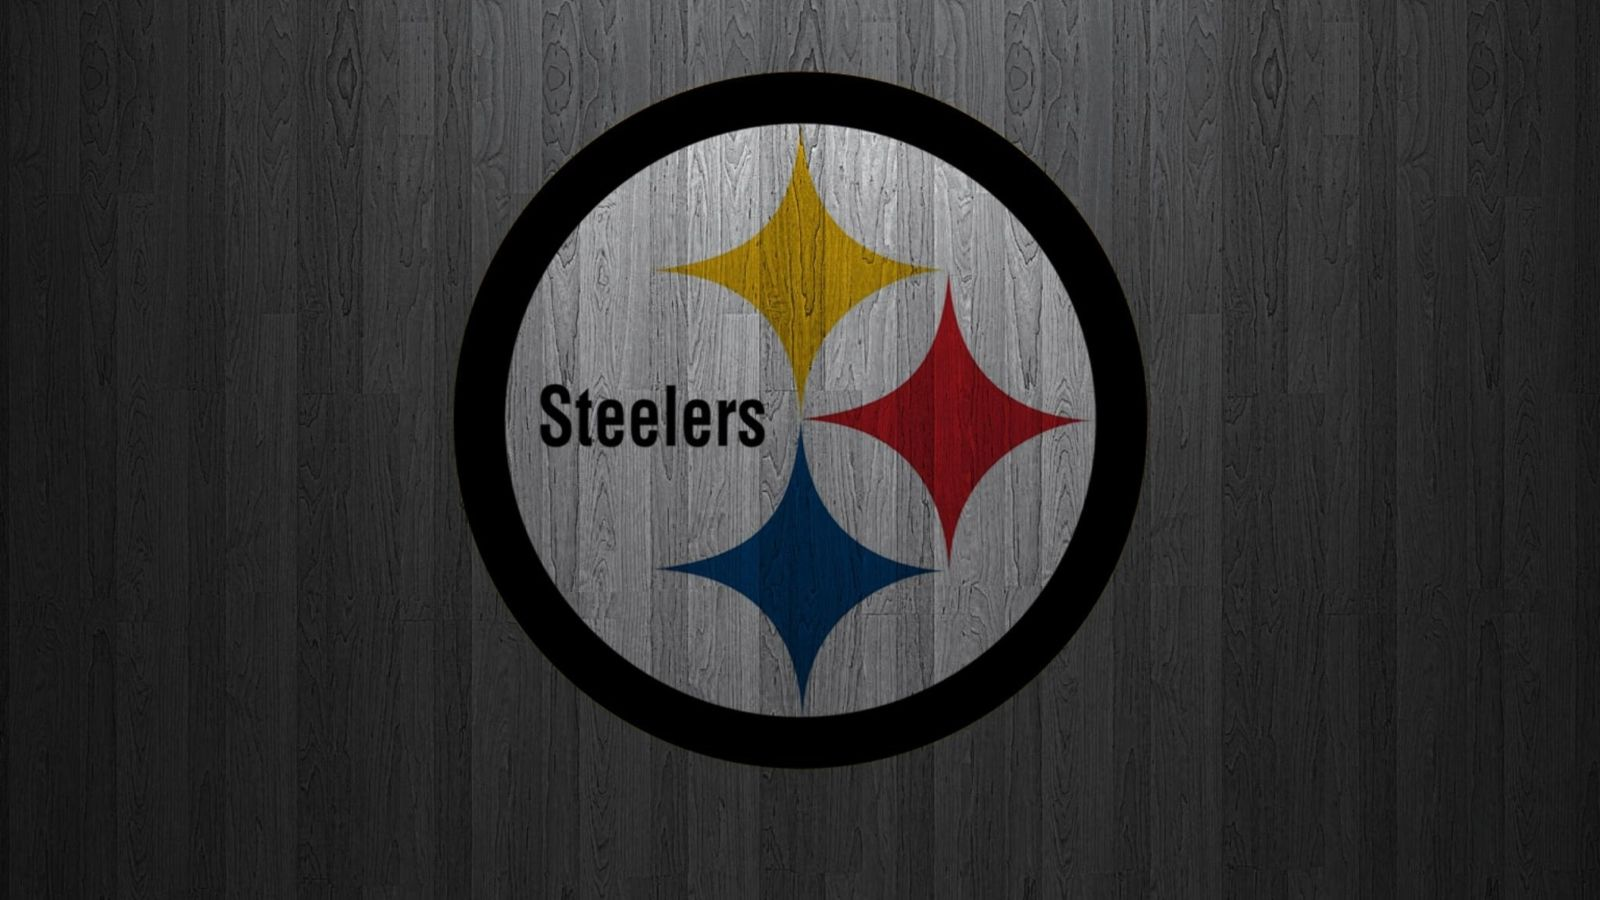 Steelers Iphone Wallpaper Pittsburgh Steelers Wallpaper For 1600x900 All